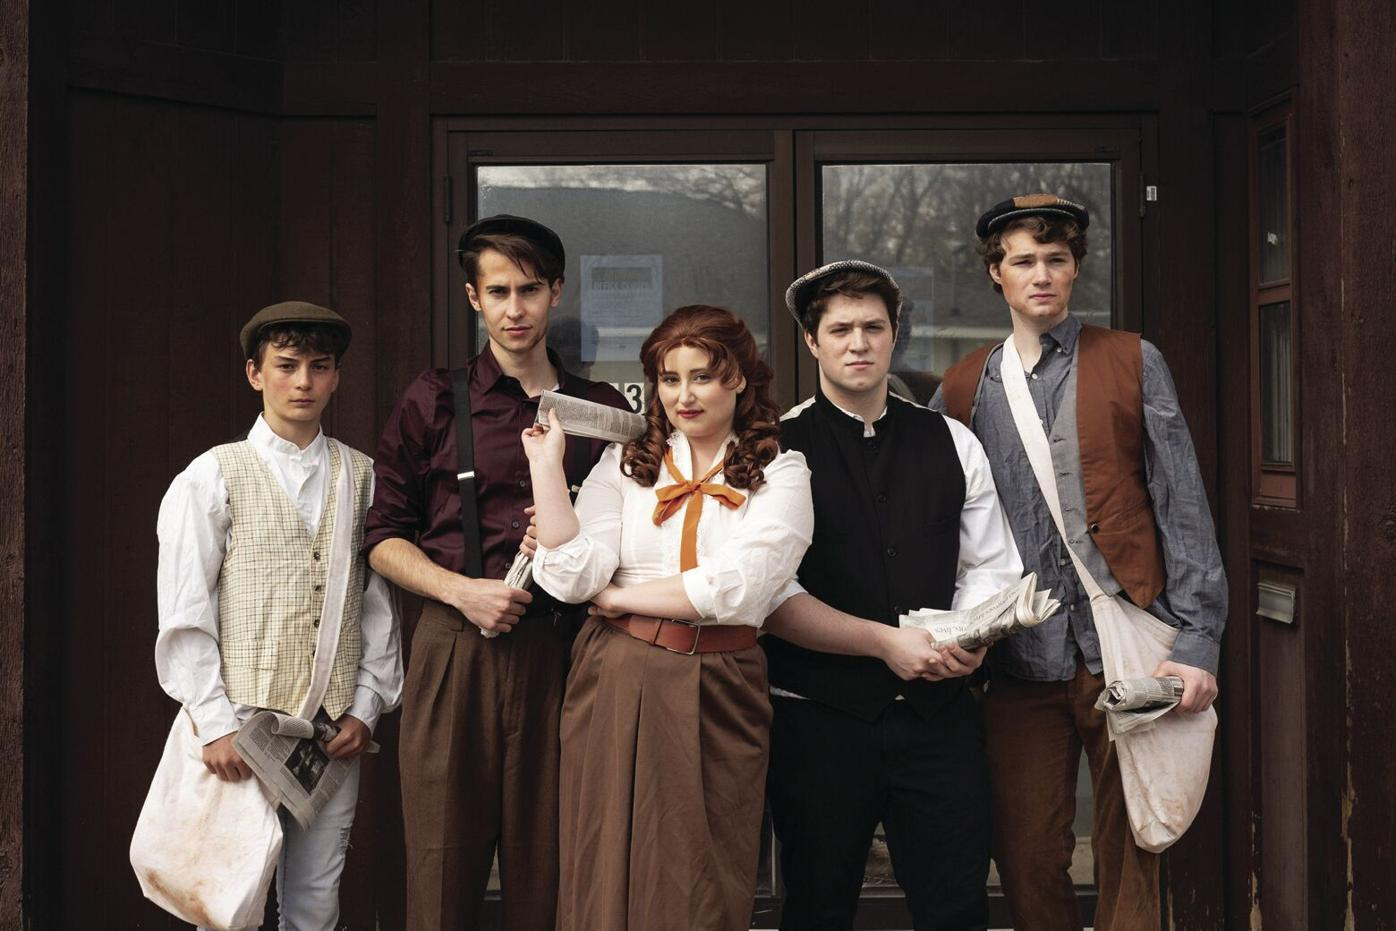 Free performances of 'Newsies the Musical' in Dayton